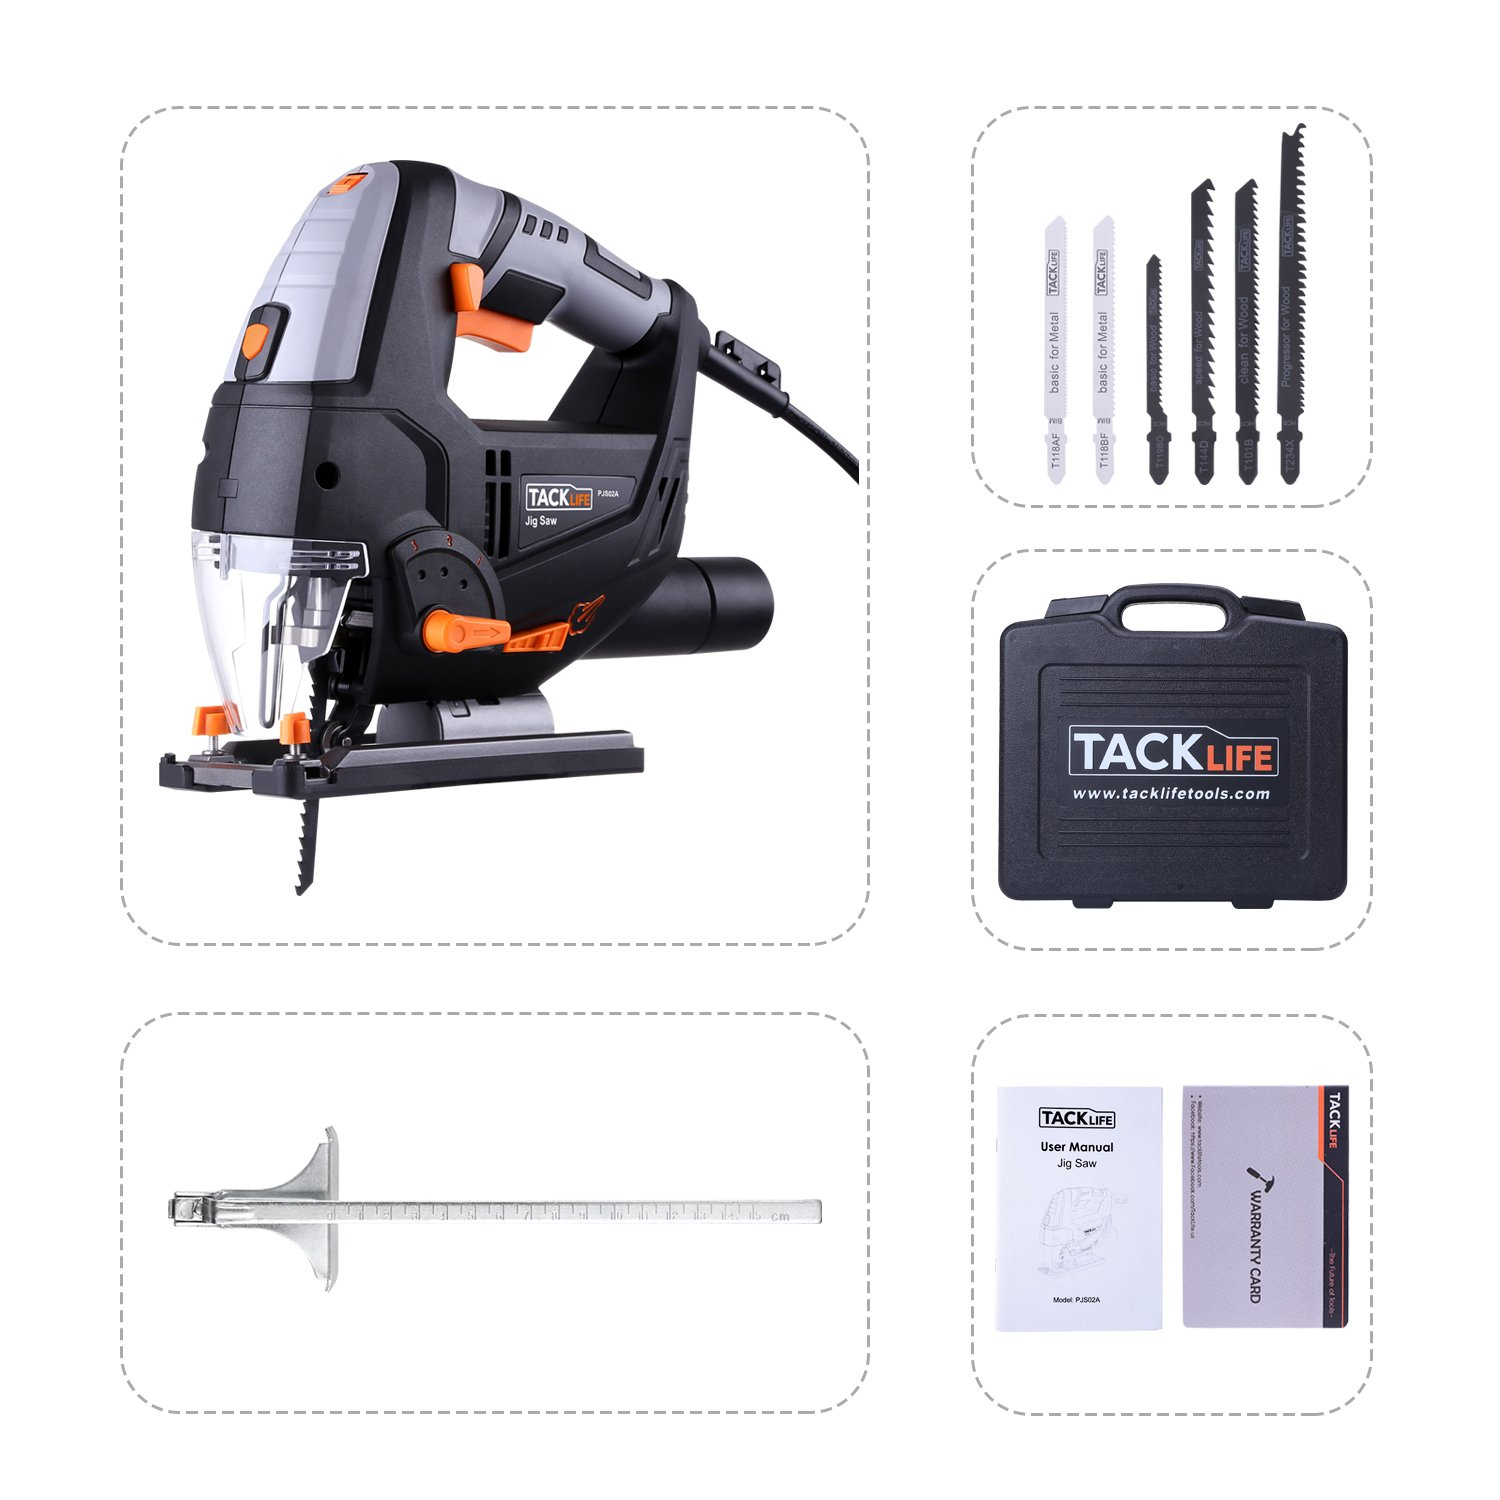 Tacklife 67 amp laser jig saw with led light variable speed tacklife 67 amp laser jig saw with led light variable speed includes carrying case 6pcs jigsaw blades metal guide ruler dust exhaust pipe allen wrench greentooth Gallery